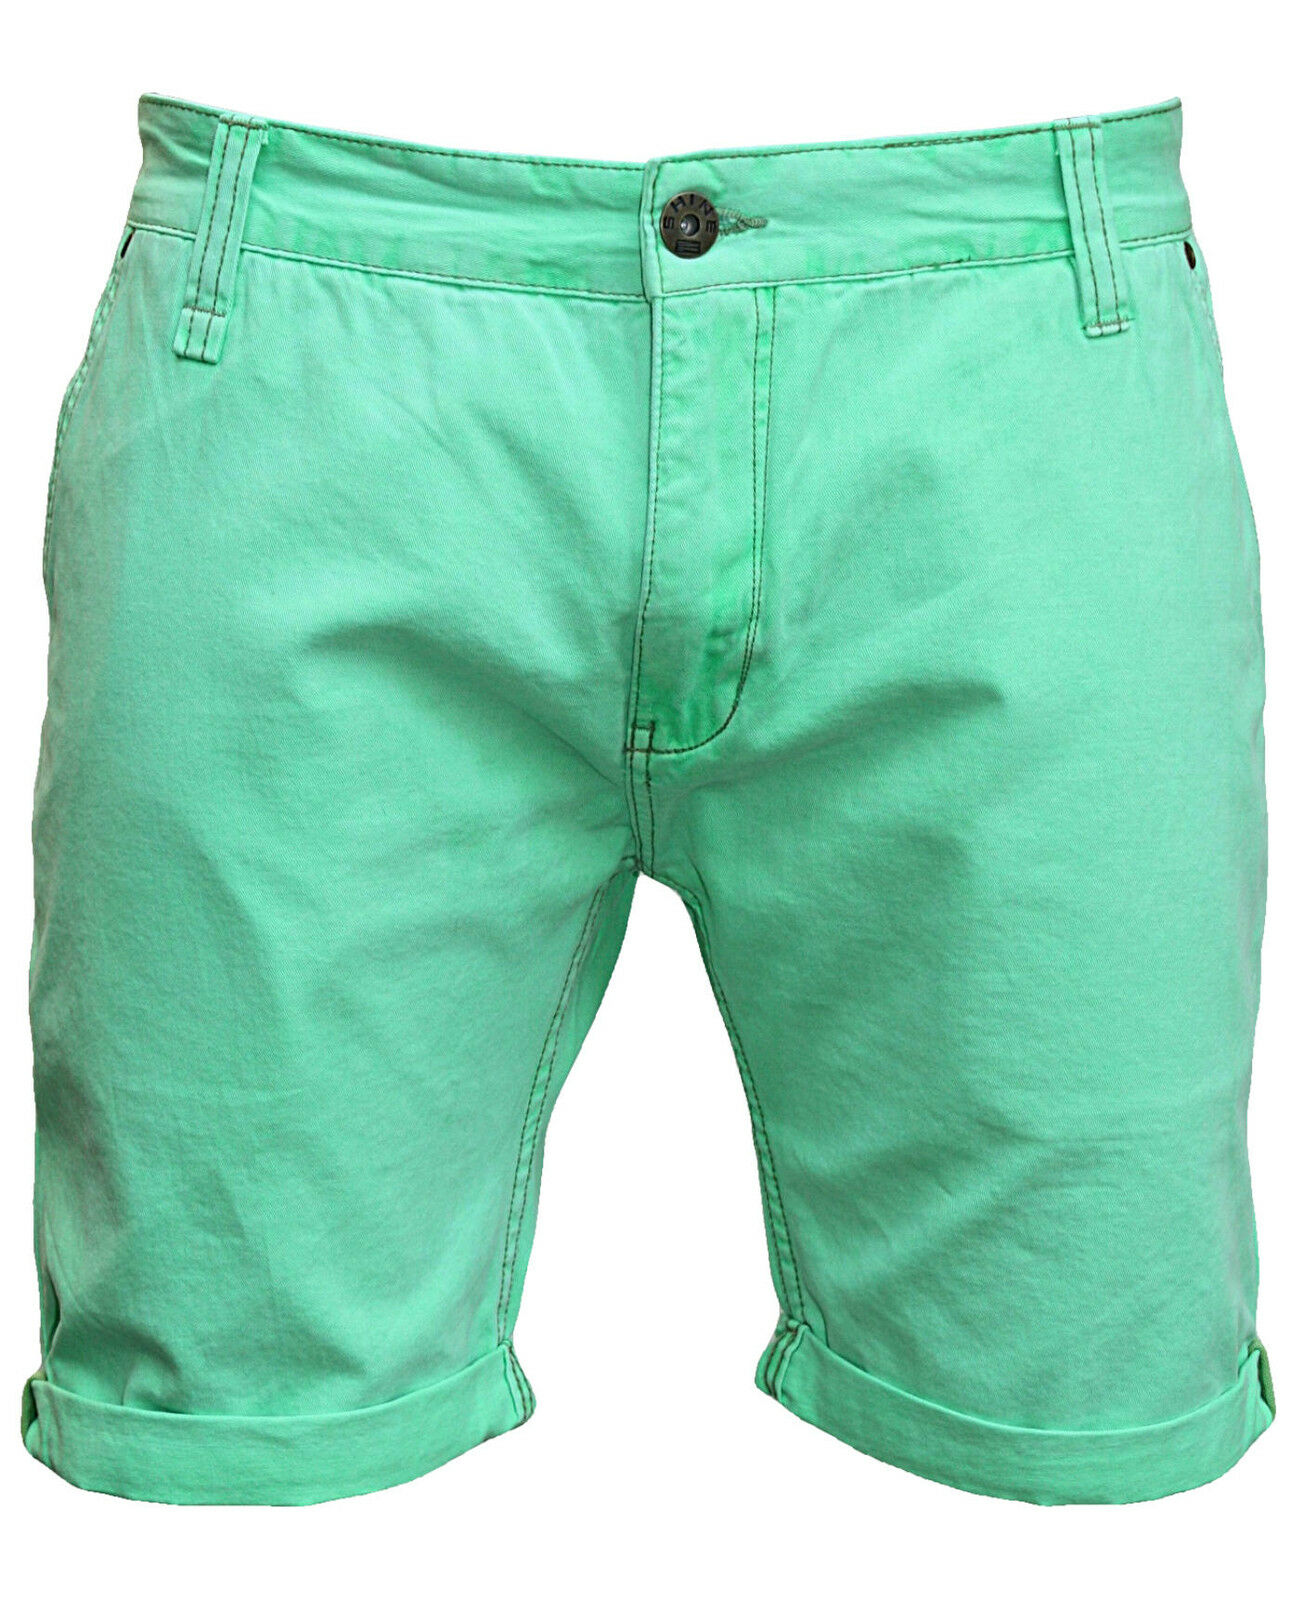 SHINE Original Shorts 2-58038 Neon Green